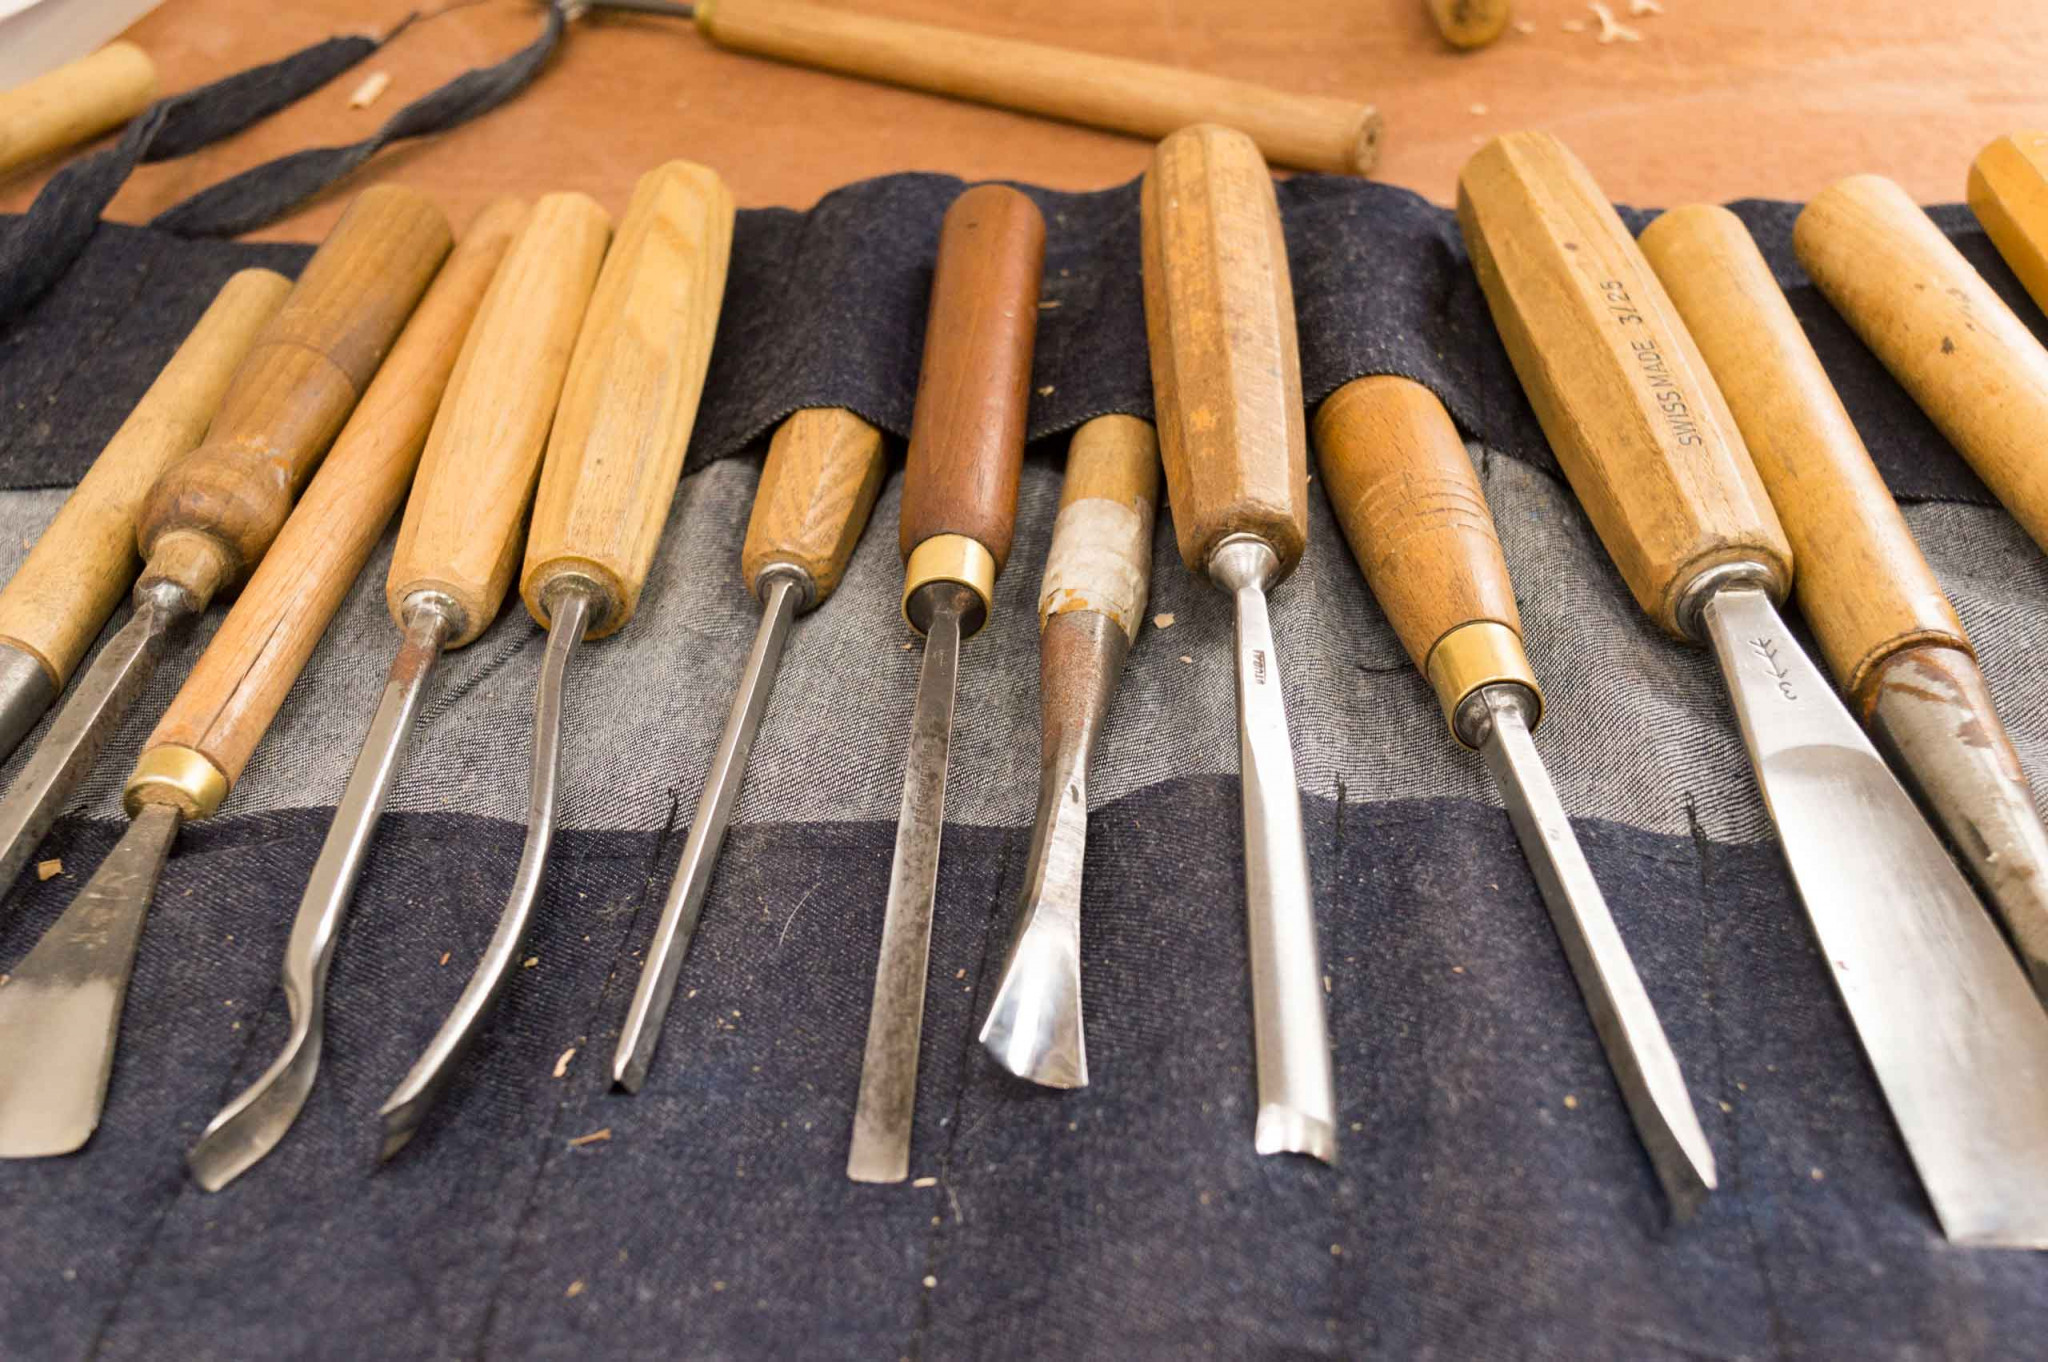 An image of carving tools